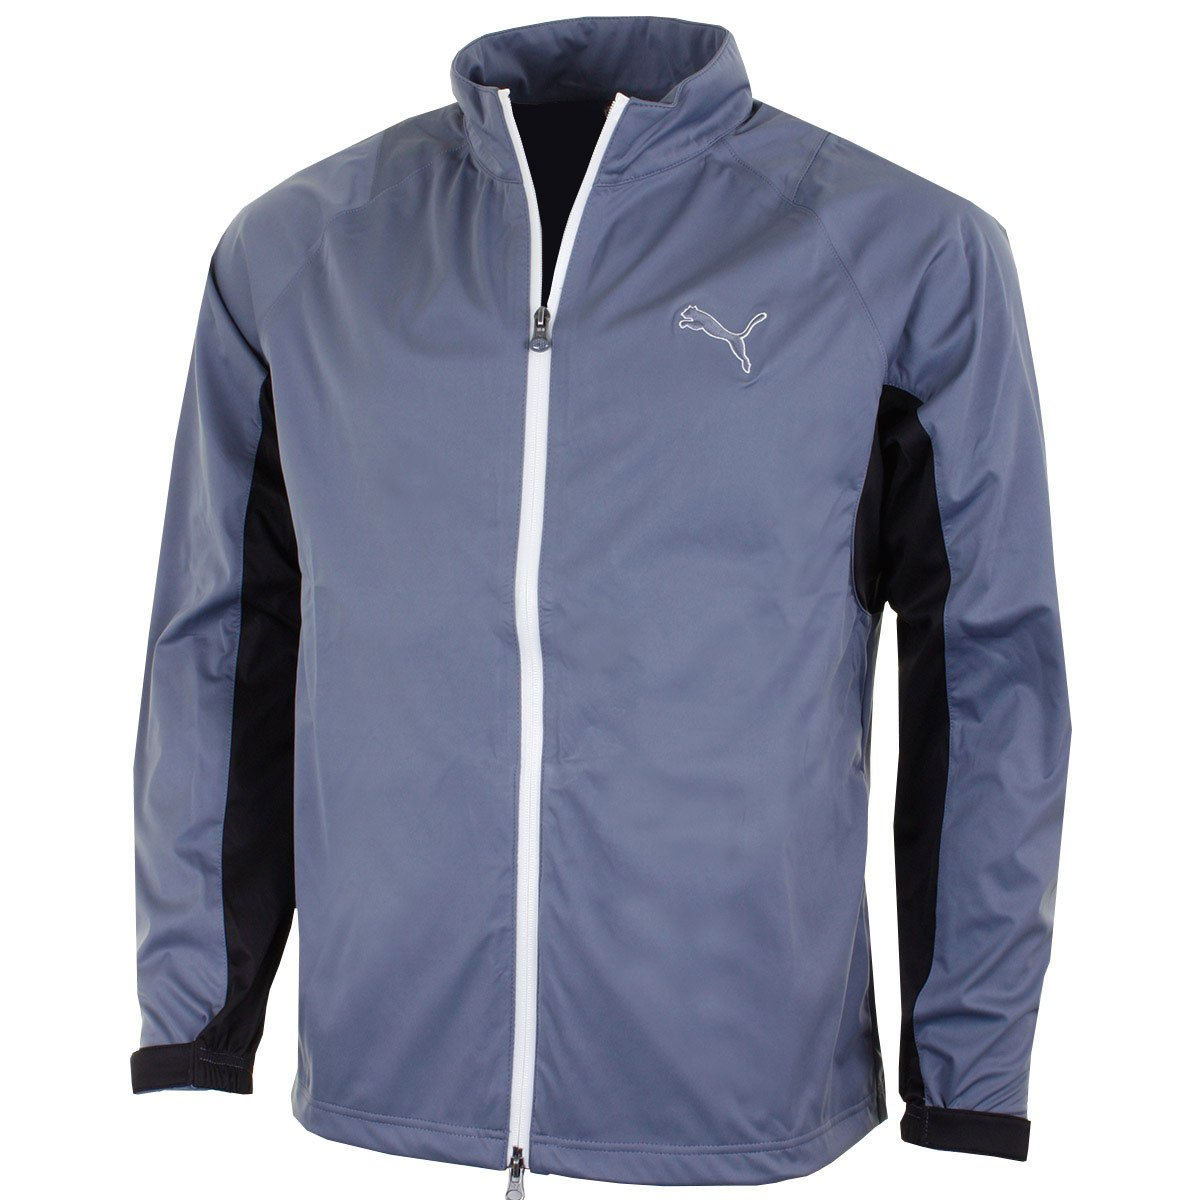 PUMA Golf Men's 568308 Waterproof Rain Jacket - US XS - Folkstone Grey